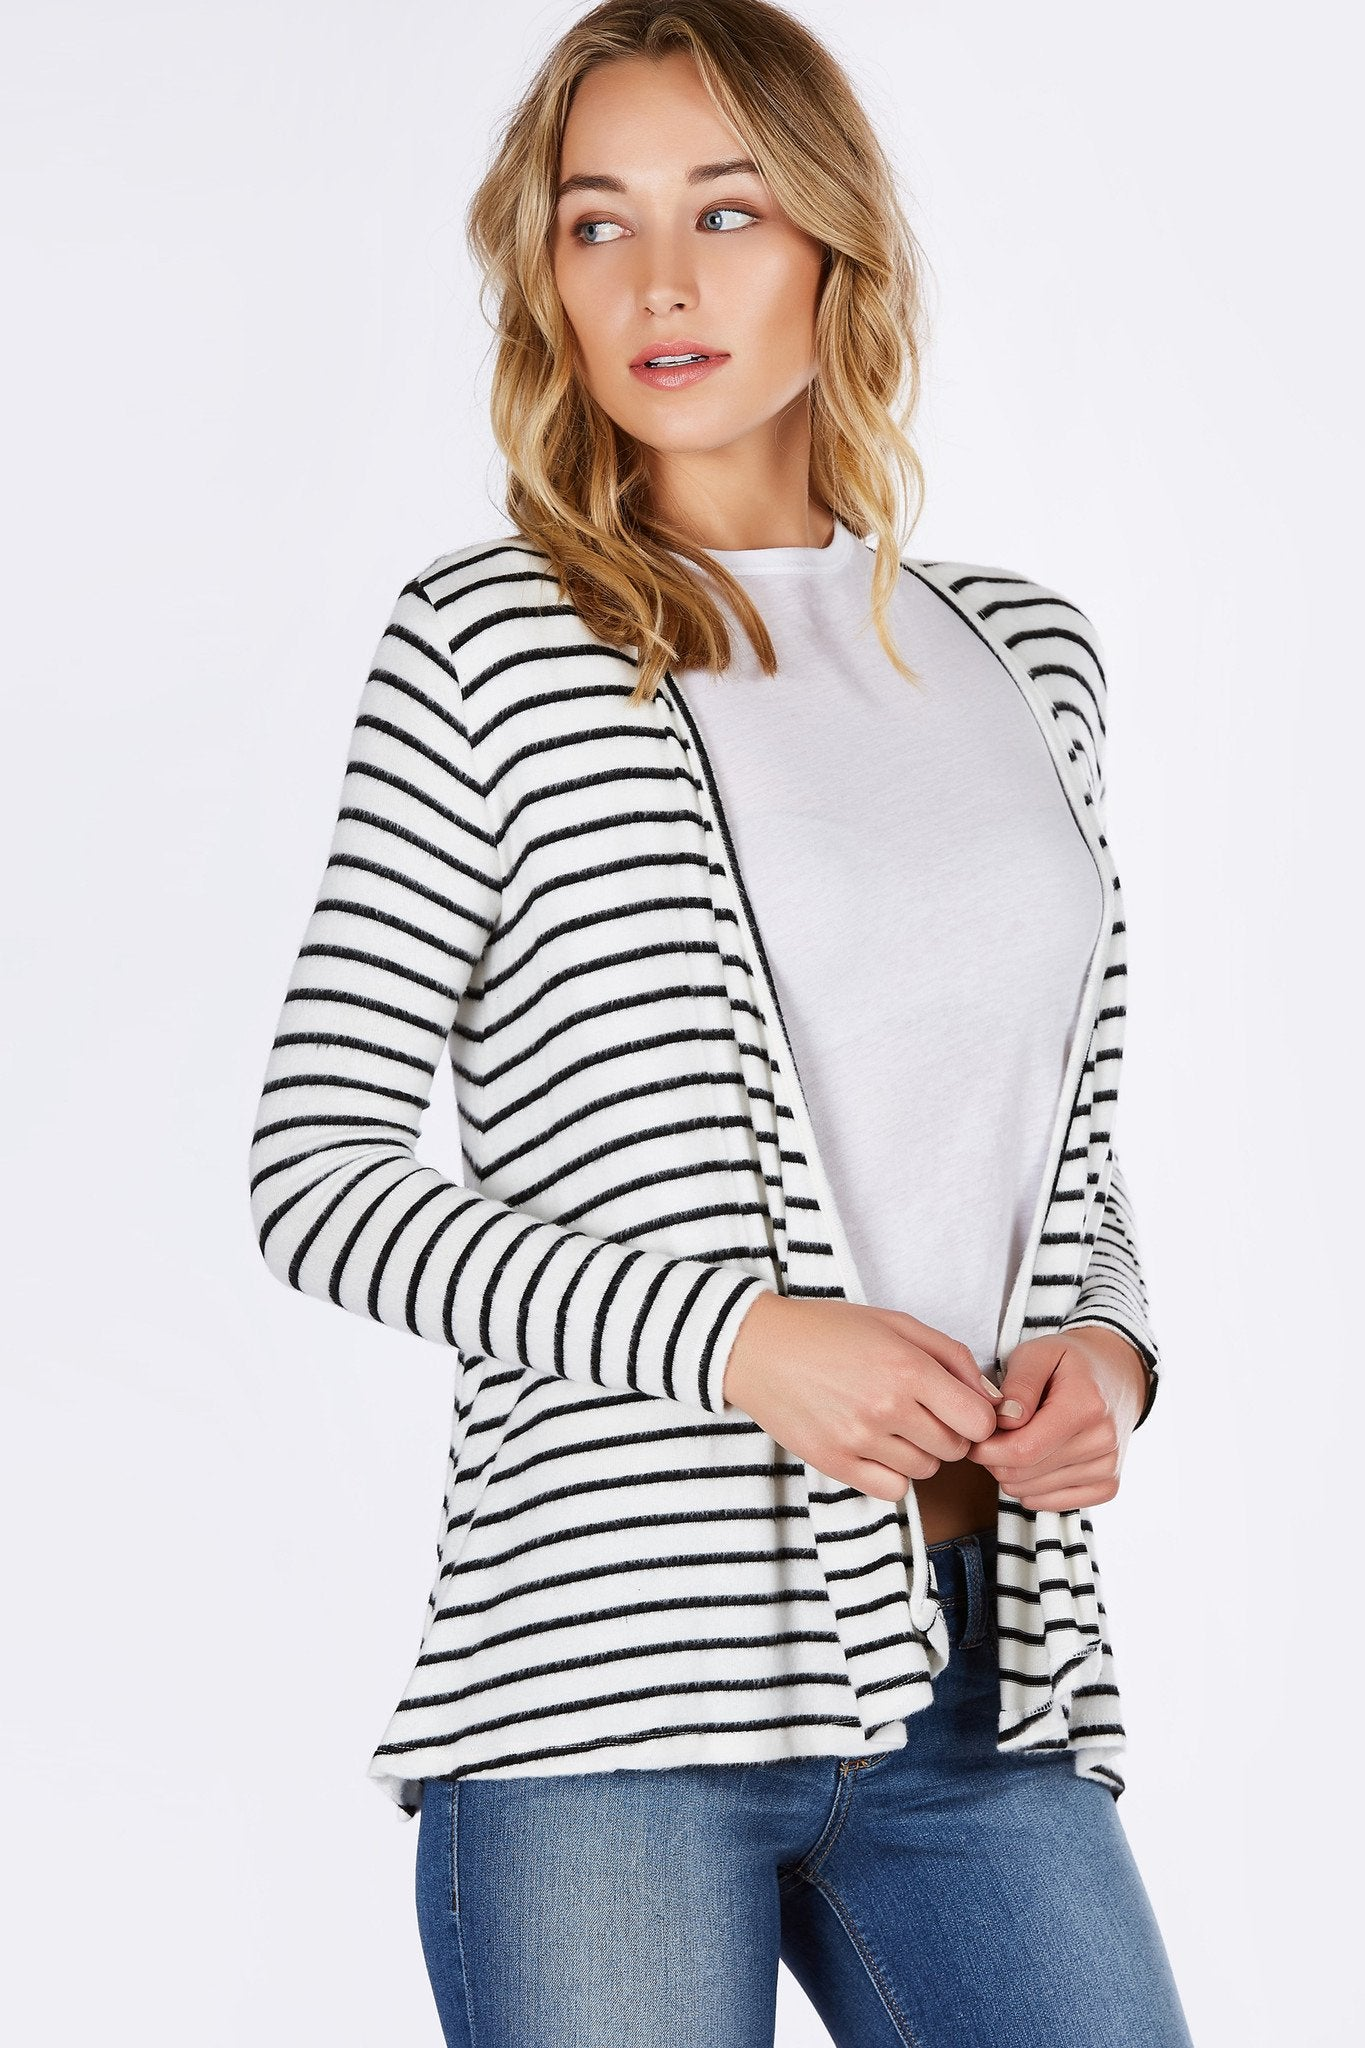 Grab this amazing transitional piece while it lasts! Awesome stripe patterns with incredibly soft exterior. Slim fit long sleeves with a comfortable relaxed fit body. Great to throw on over a bodysuit and shorts!